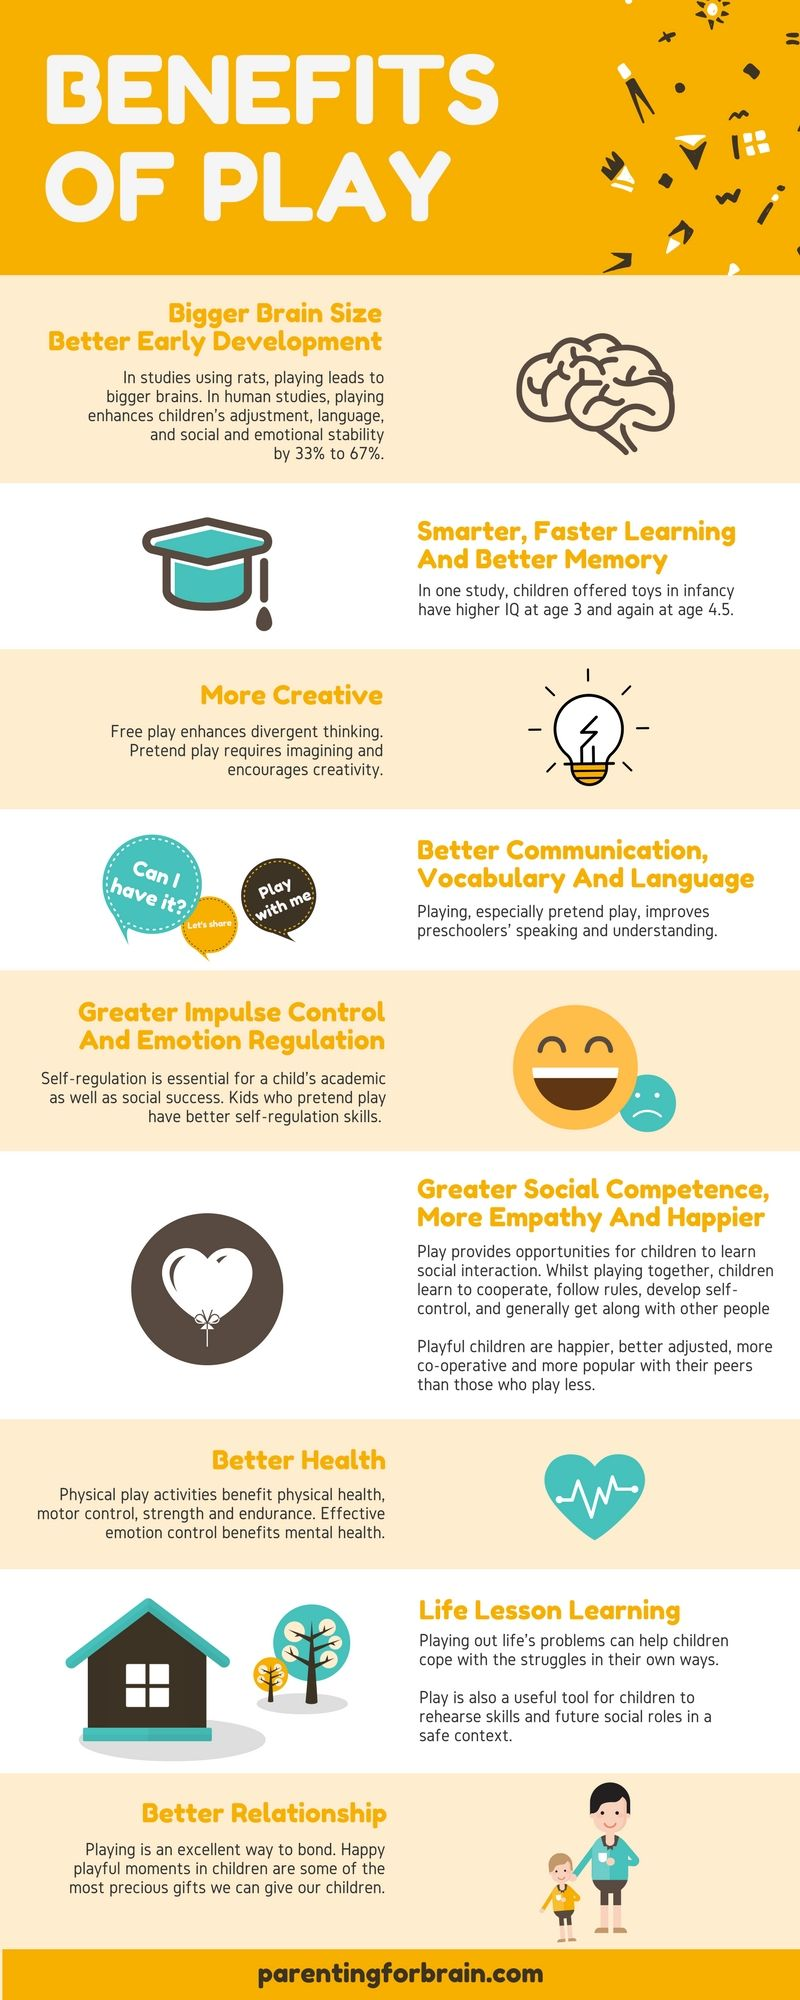 benefits of play The Secret to Learning For Children: Play